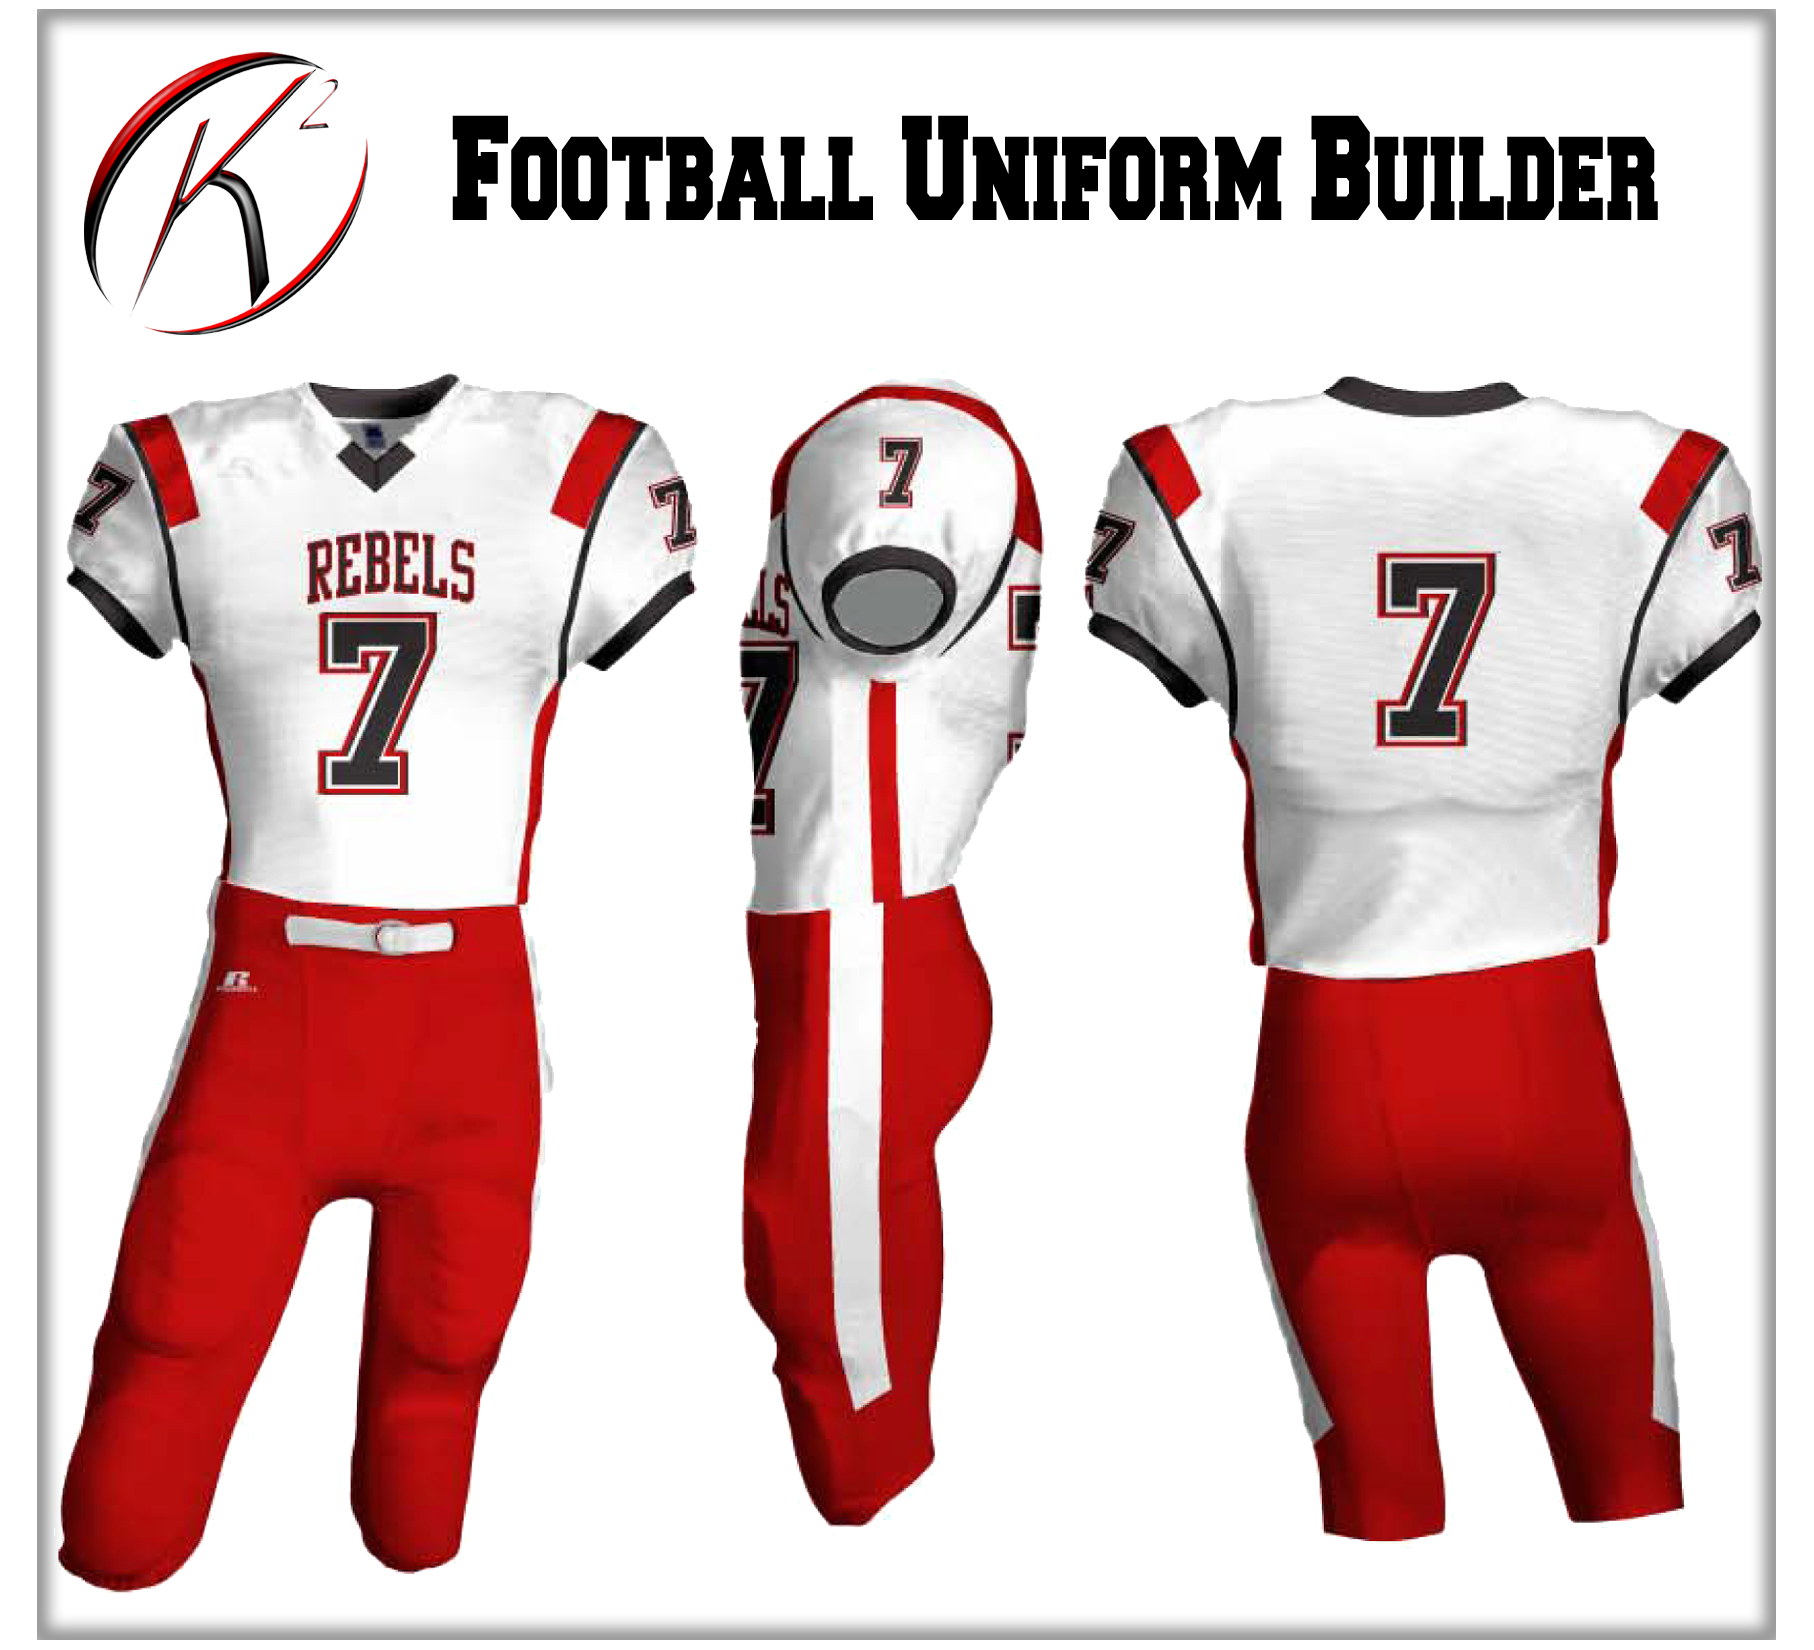 K2 - Football Uniform Builder